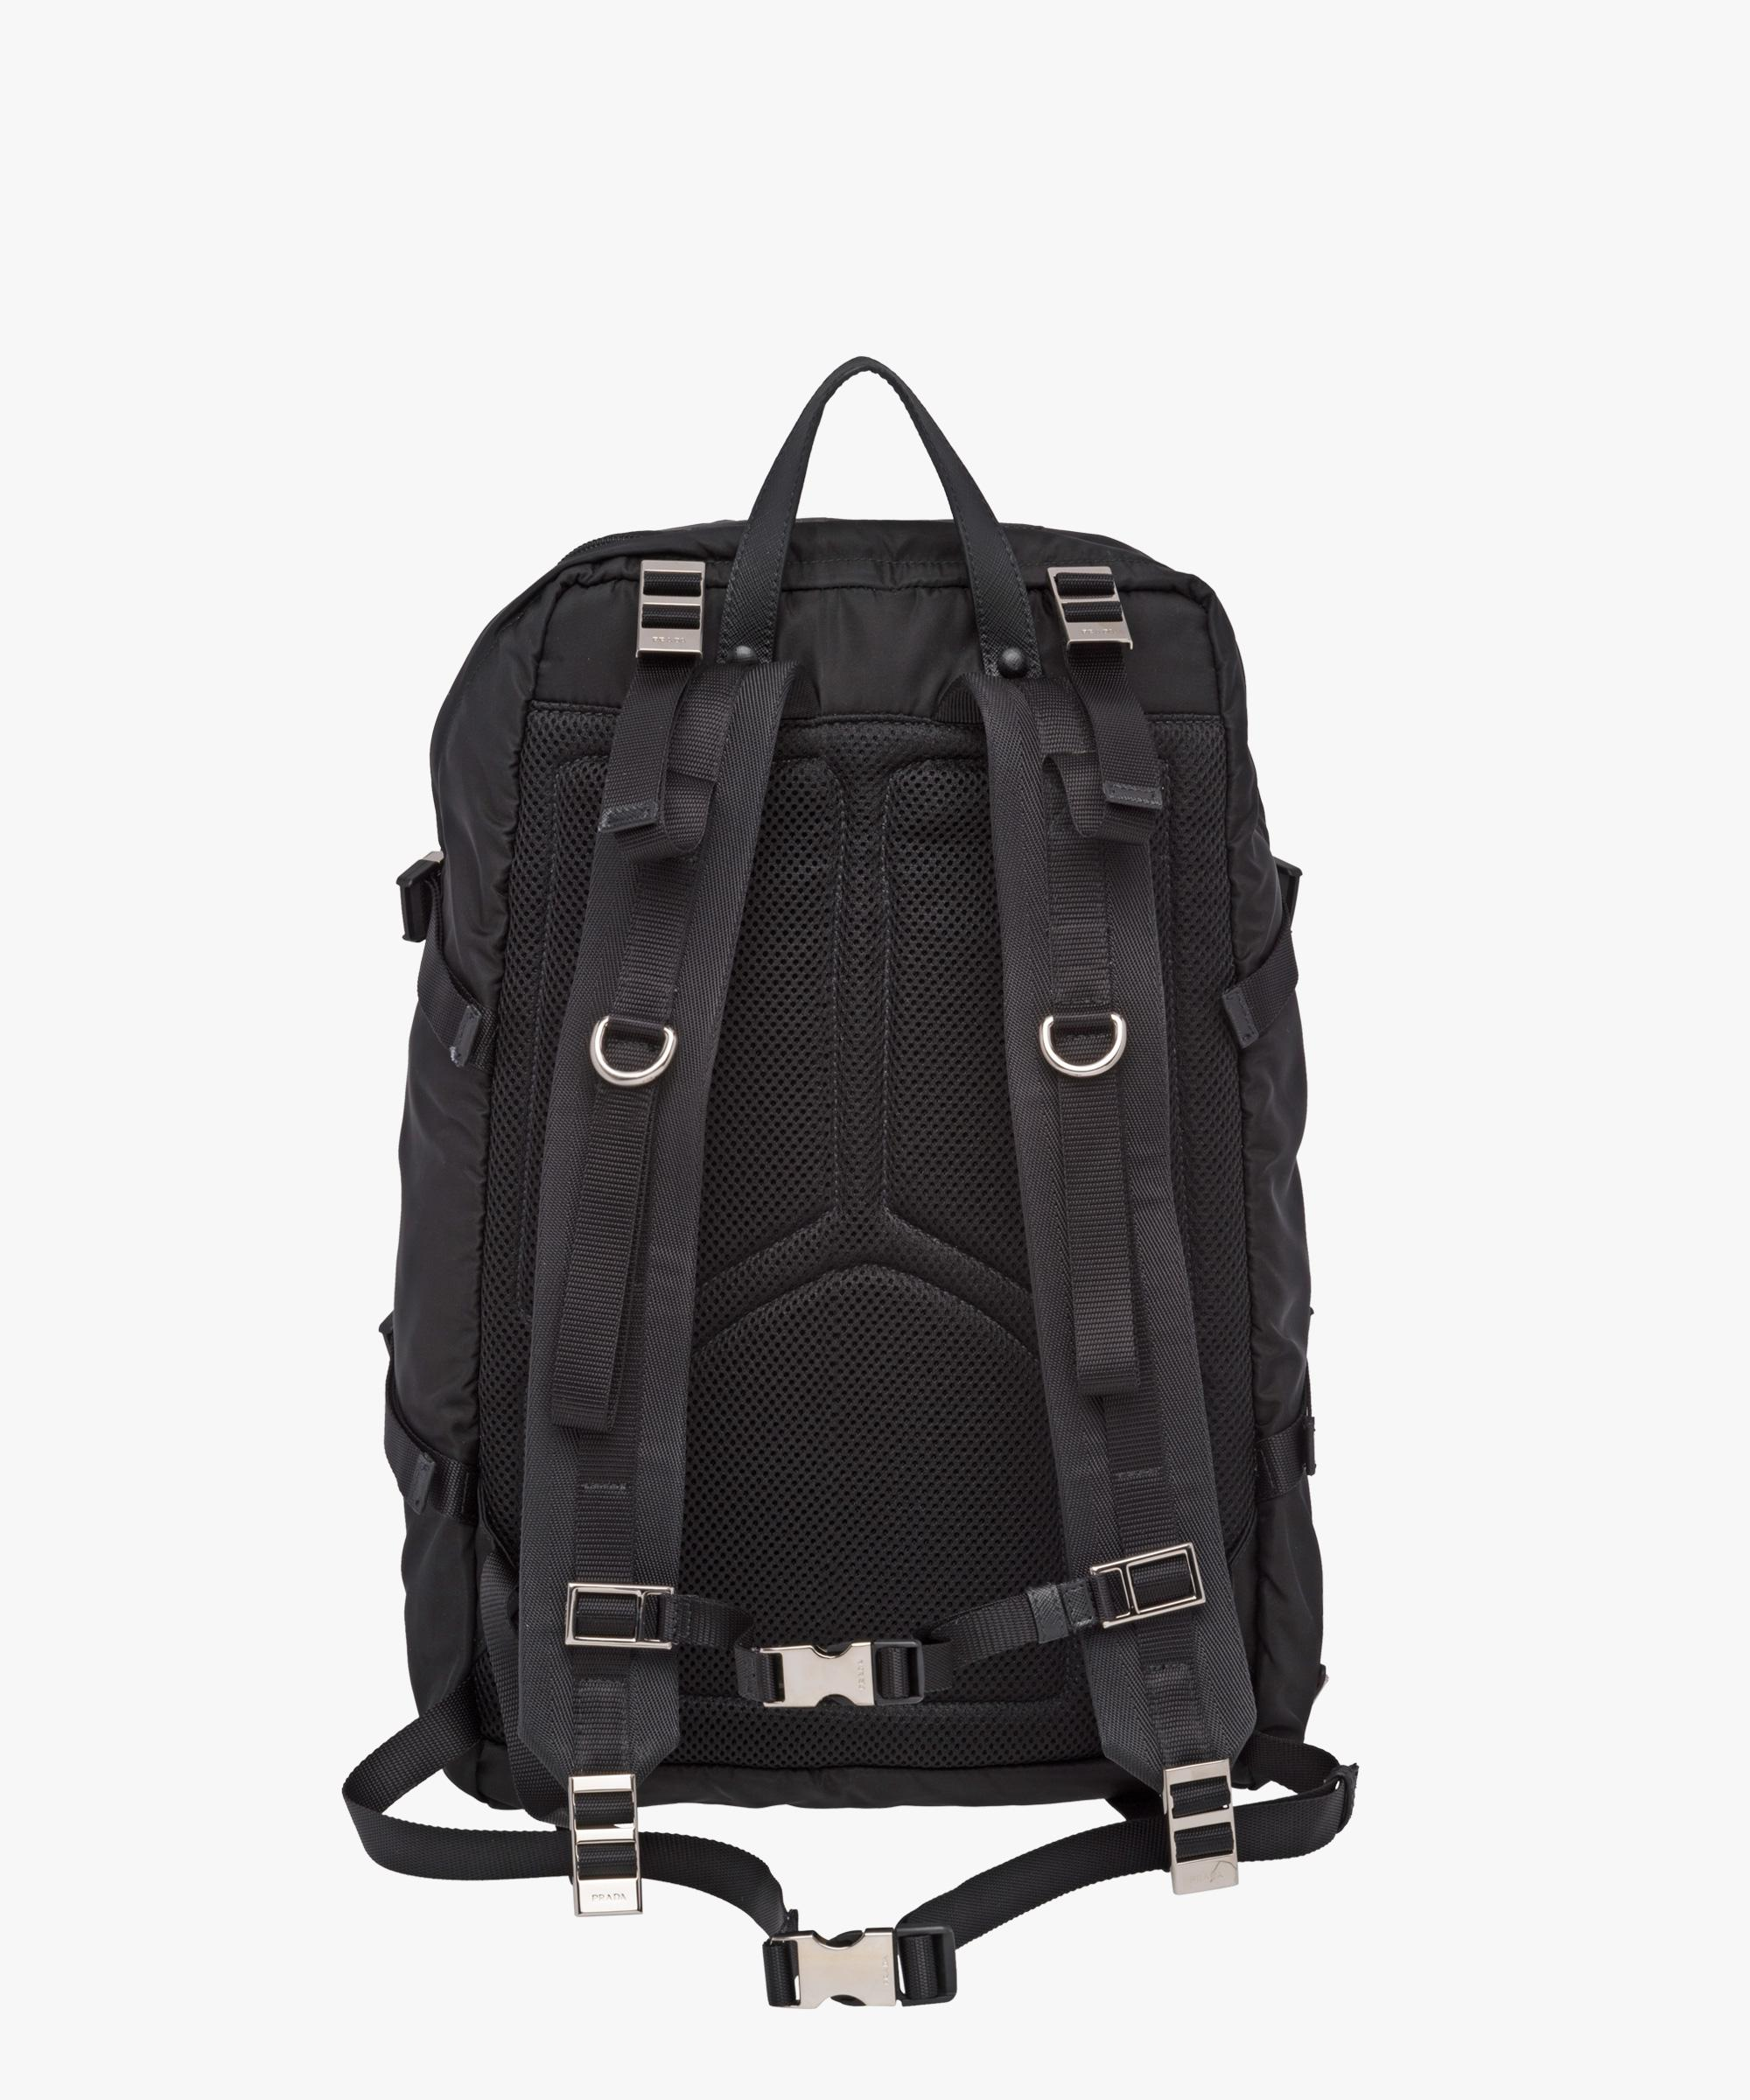 c6a1a8938440 ... sweden lyst prada technical fabric and saffiano leather backpack in  black 4f49a a825f